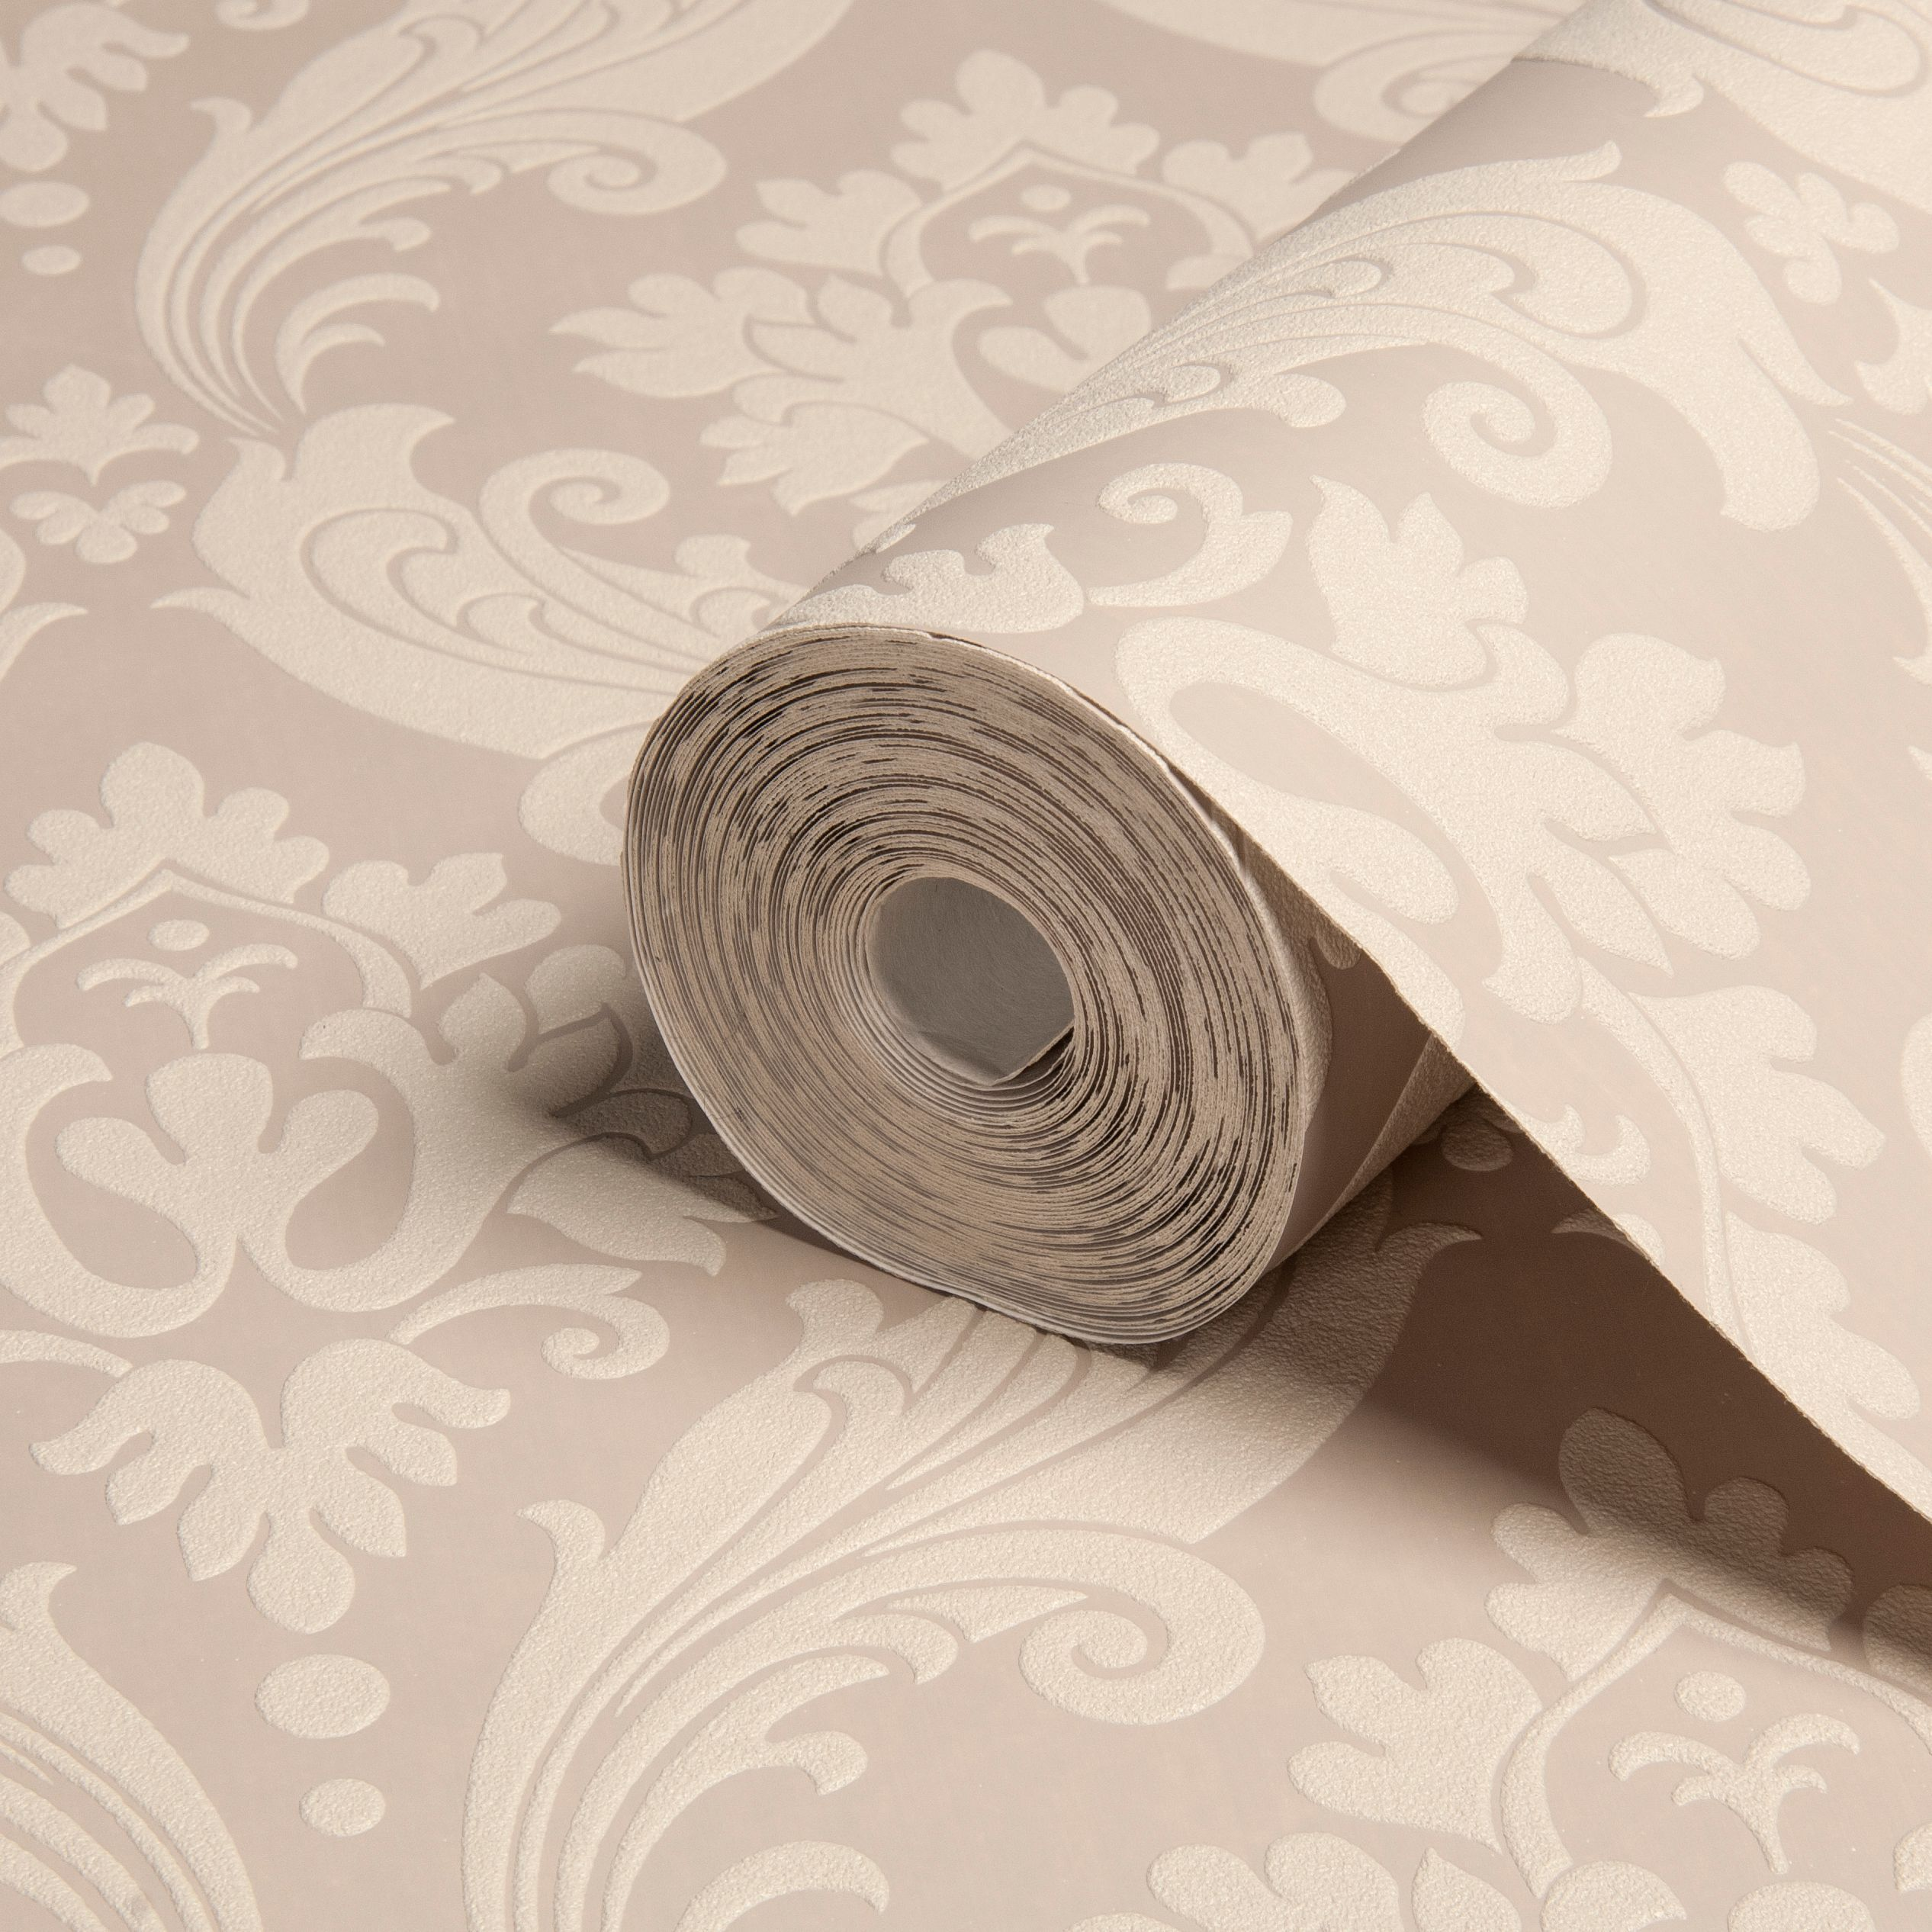 Graham Brown Kelly Hoppen Beige Damask Flock Wallpaper Bq For All Your Home And Garden Supplies And Advice On All The Latest Diy Trends